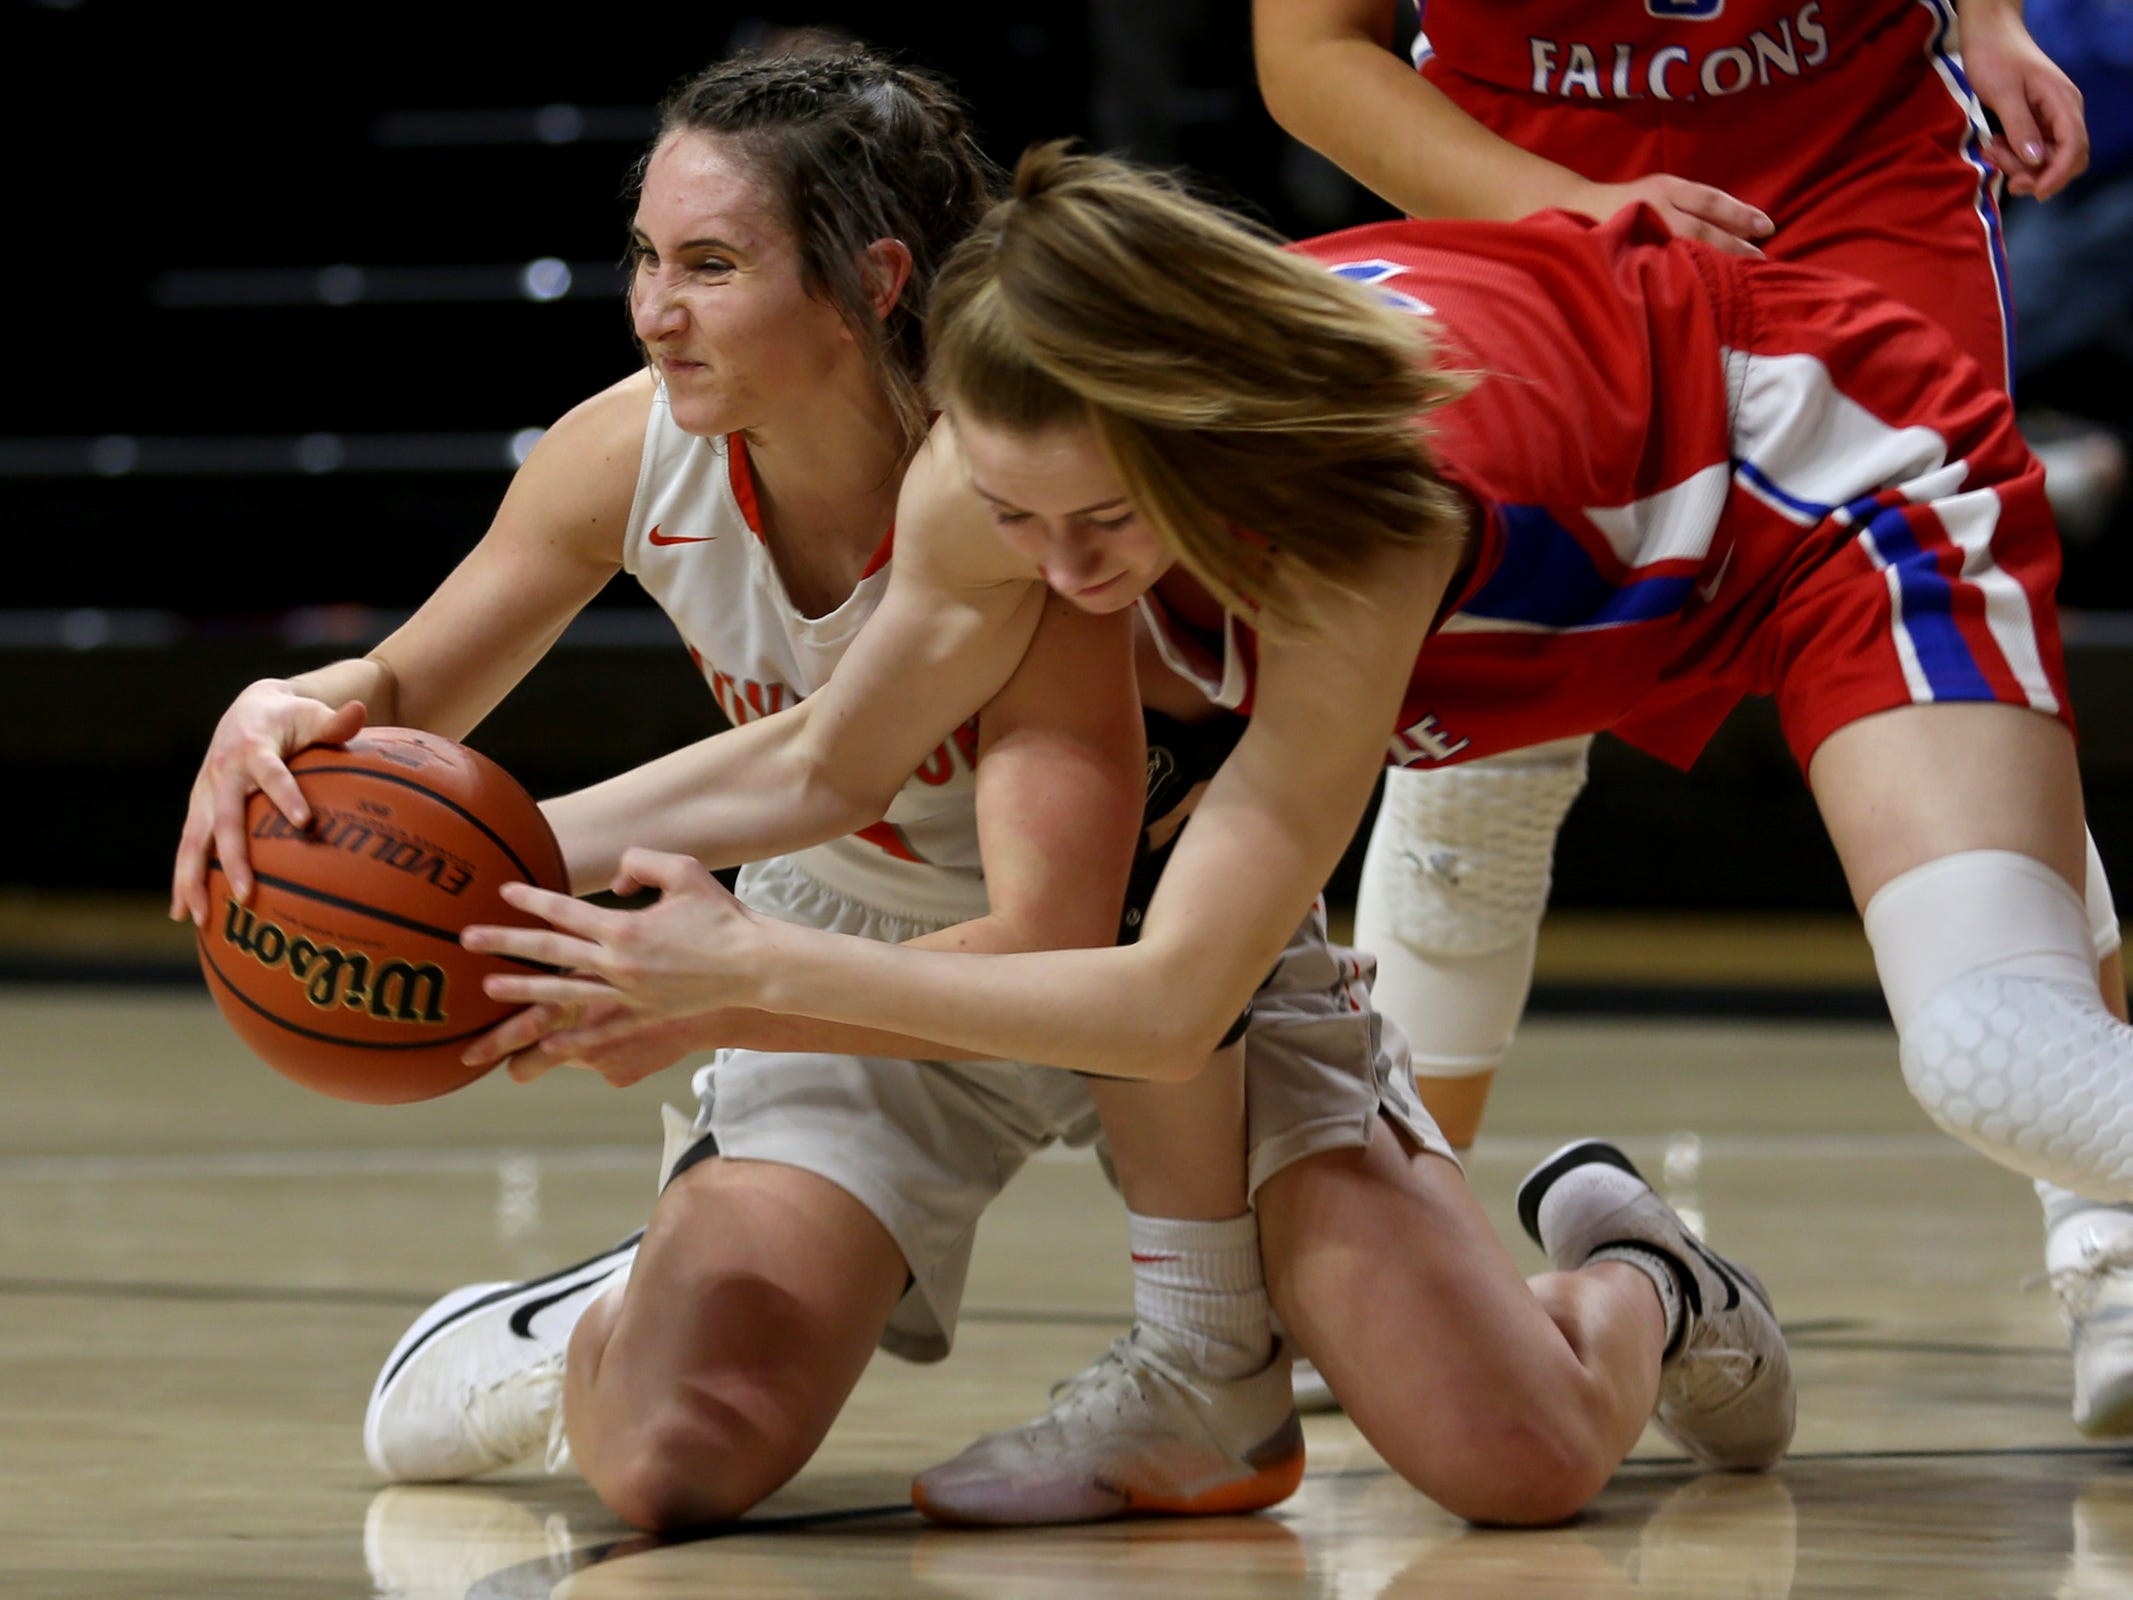 Silverton's Jori Paradis (1) and La Salle Prep's Lindsay Drango (4) fight for the ball on the floor in the second half of the La Salle Prep vs. Silverton girls basketball game in the OSAA Class 5A quarterfinals at Oregon State University in Corvallis on Thursday, March 7, 2019. La Salle Prep won the game 57-46.